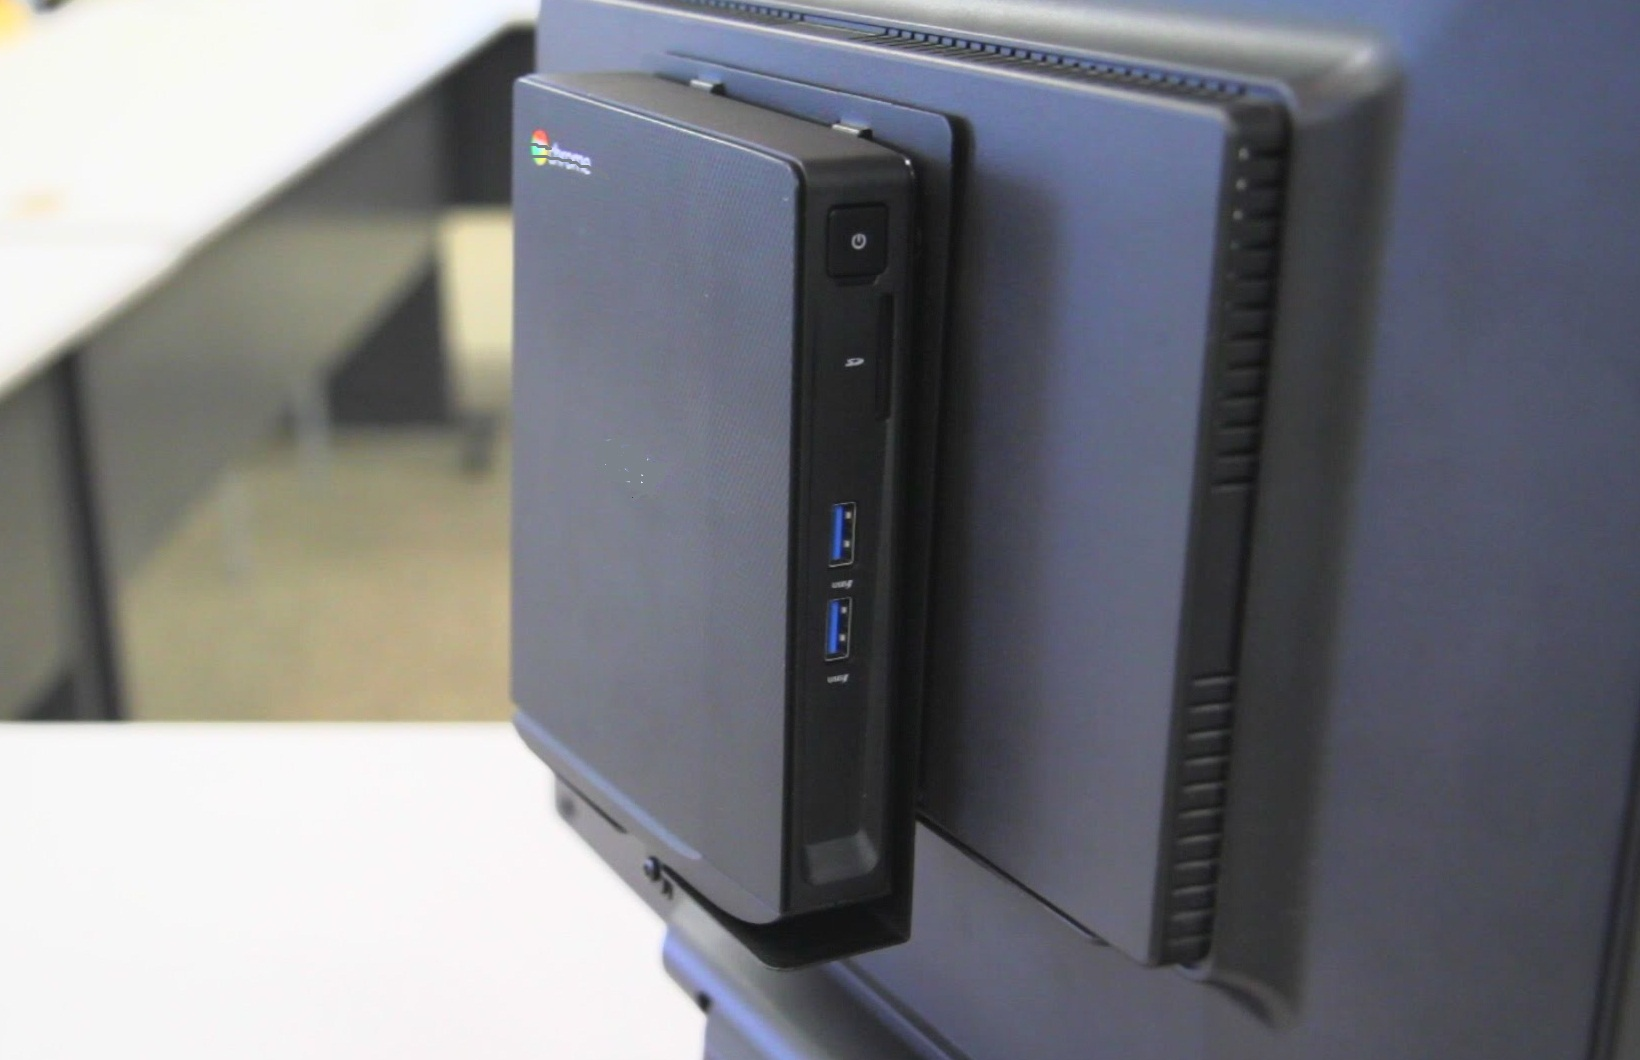 Facts to Know about Chromebox PC